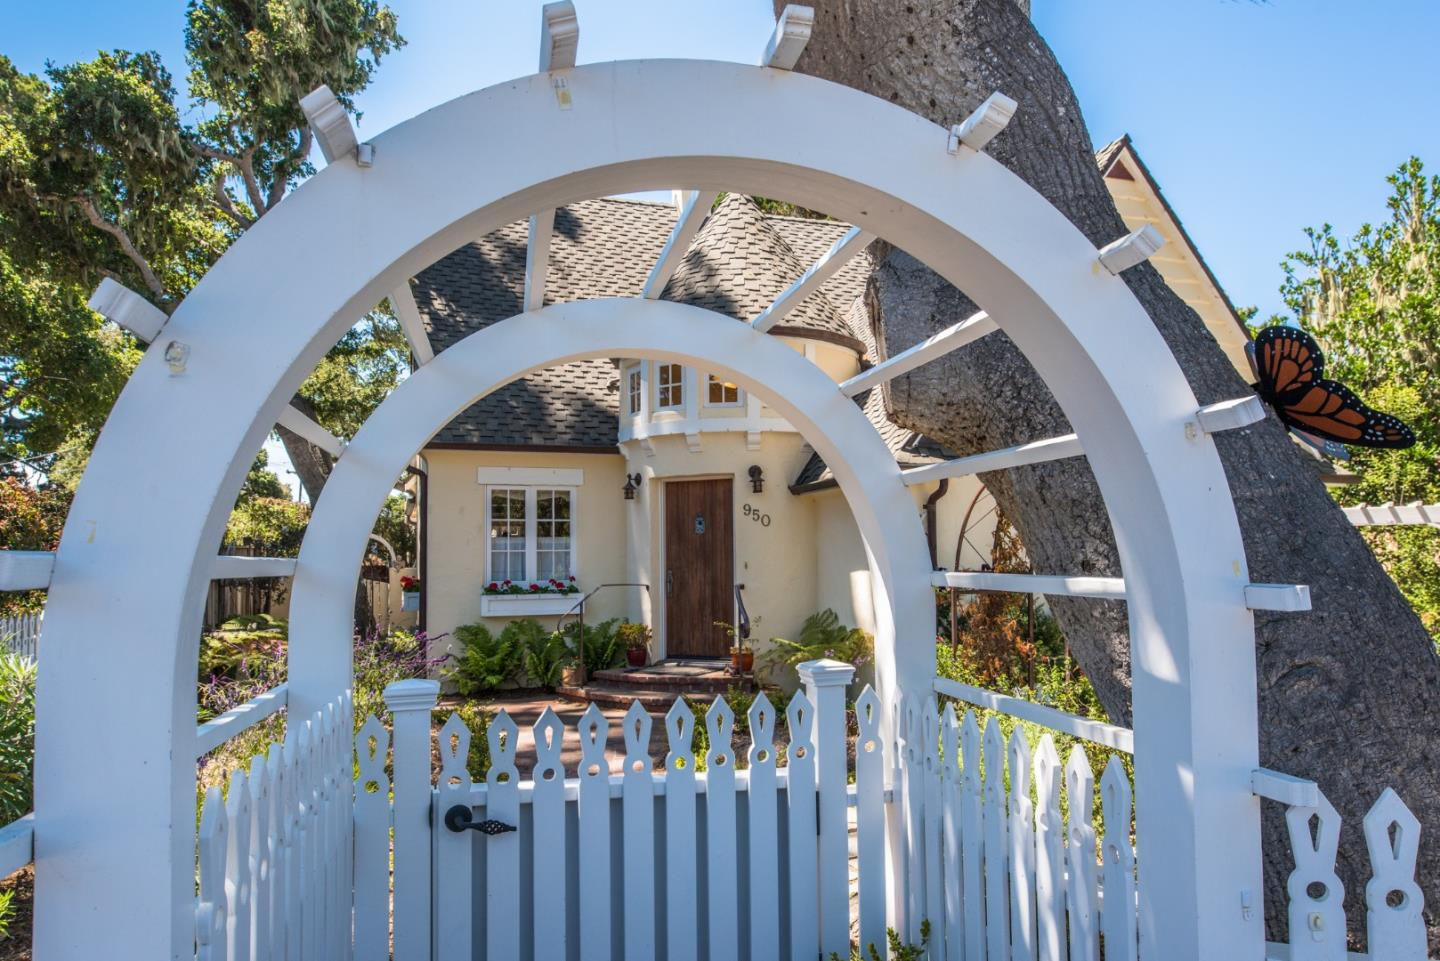 950 14th St, Pacific Grove, CA for sale in Candy Cane Lane neighborhood - white picket fence cottage arbor